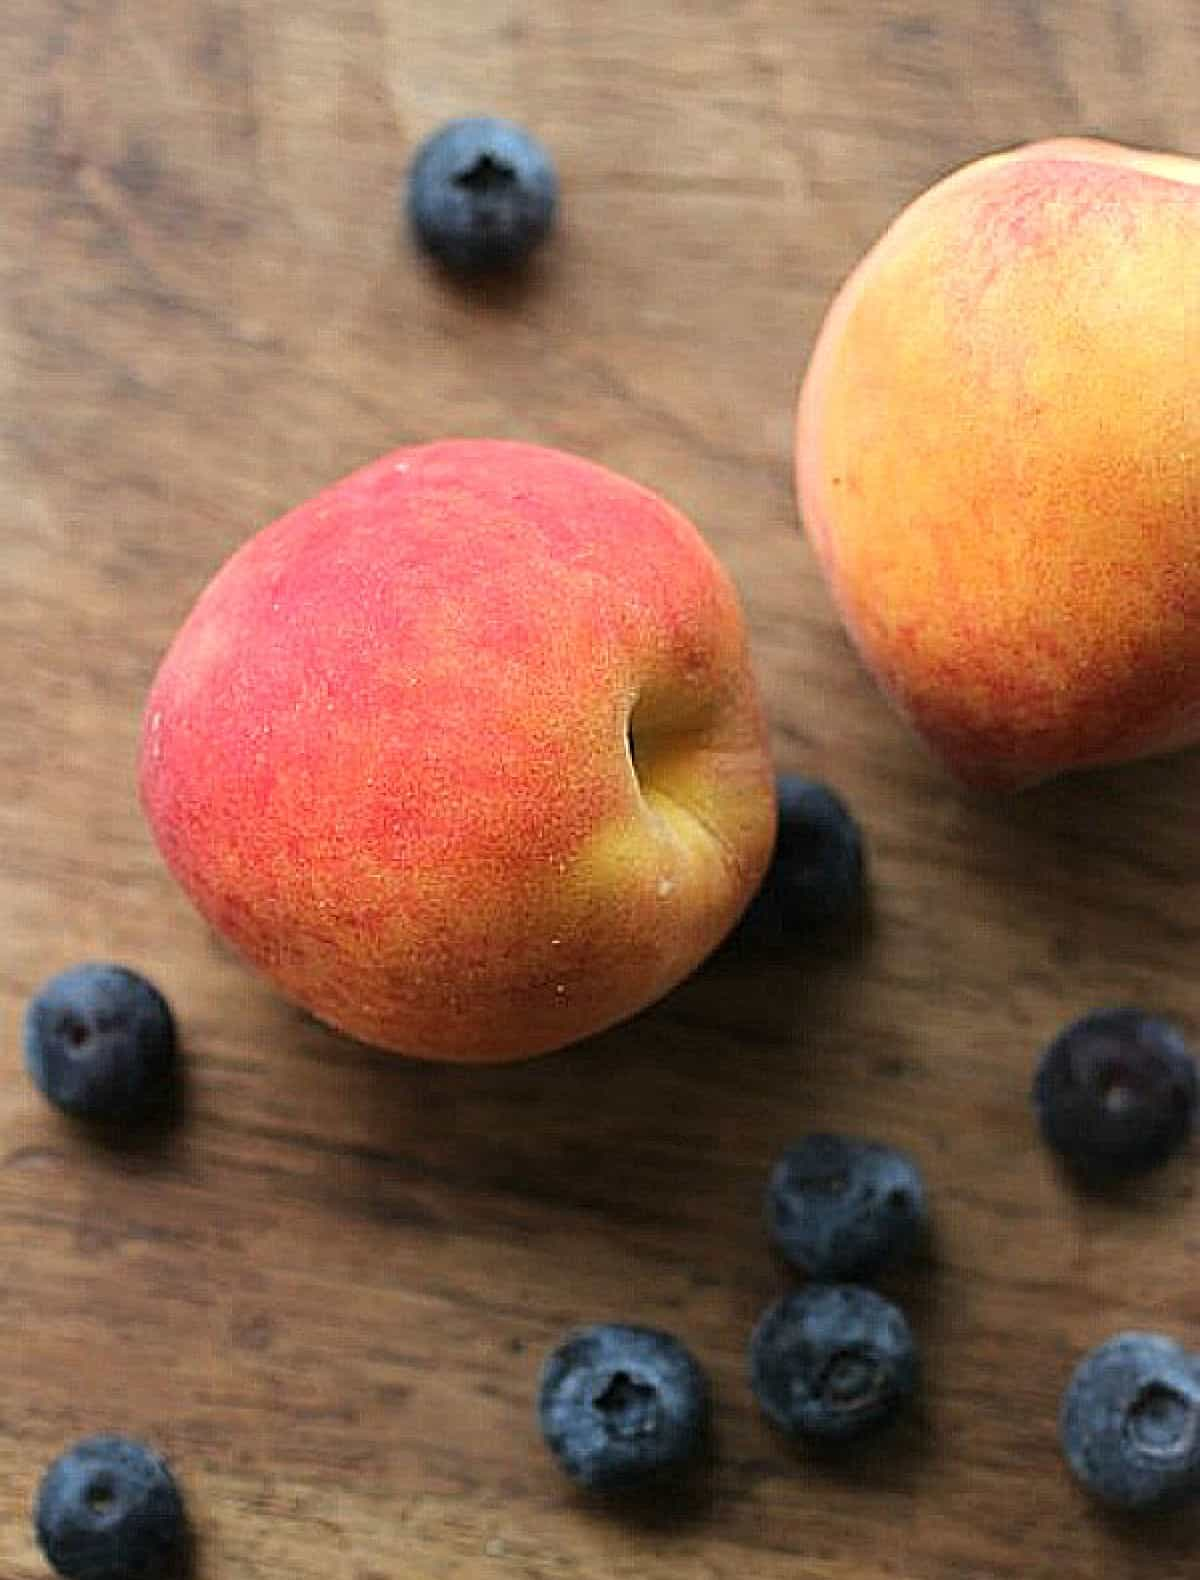 Peaches and blueberries on wooden table